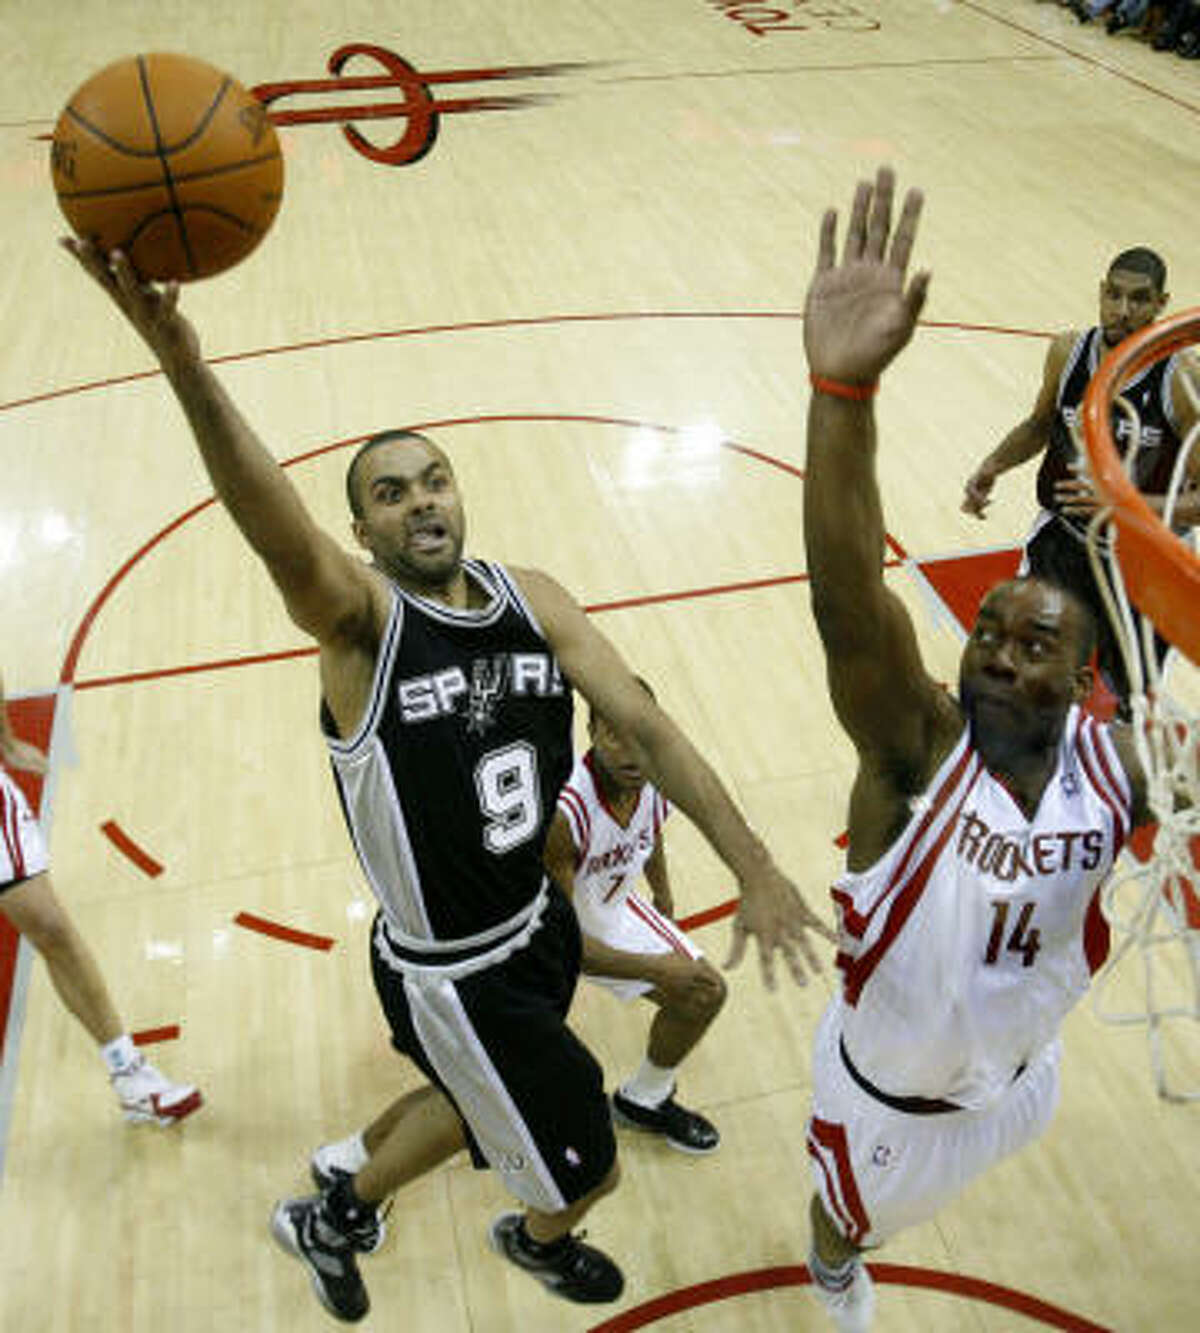 Spurs guard Tony Parker (9) drives to the basket past Rockets forward Carl Landry (14) during the second half. The Spurs beat the Rockets, 92-84.